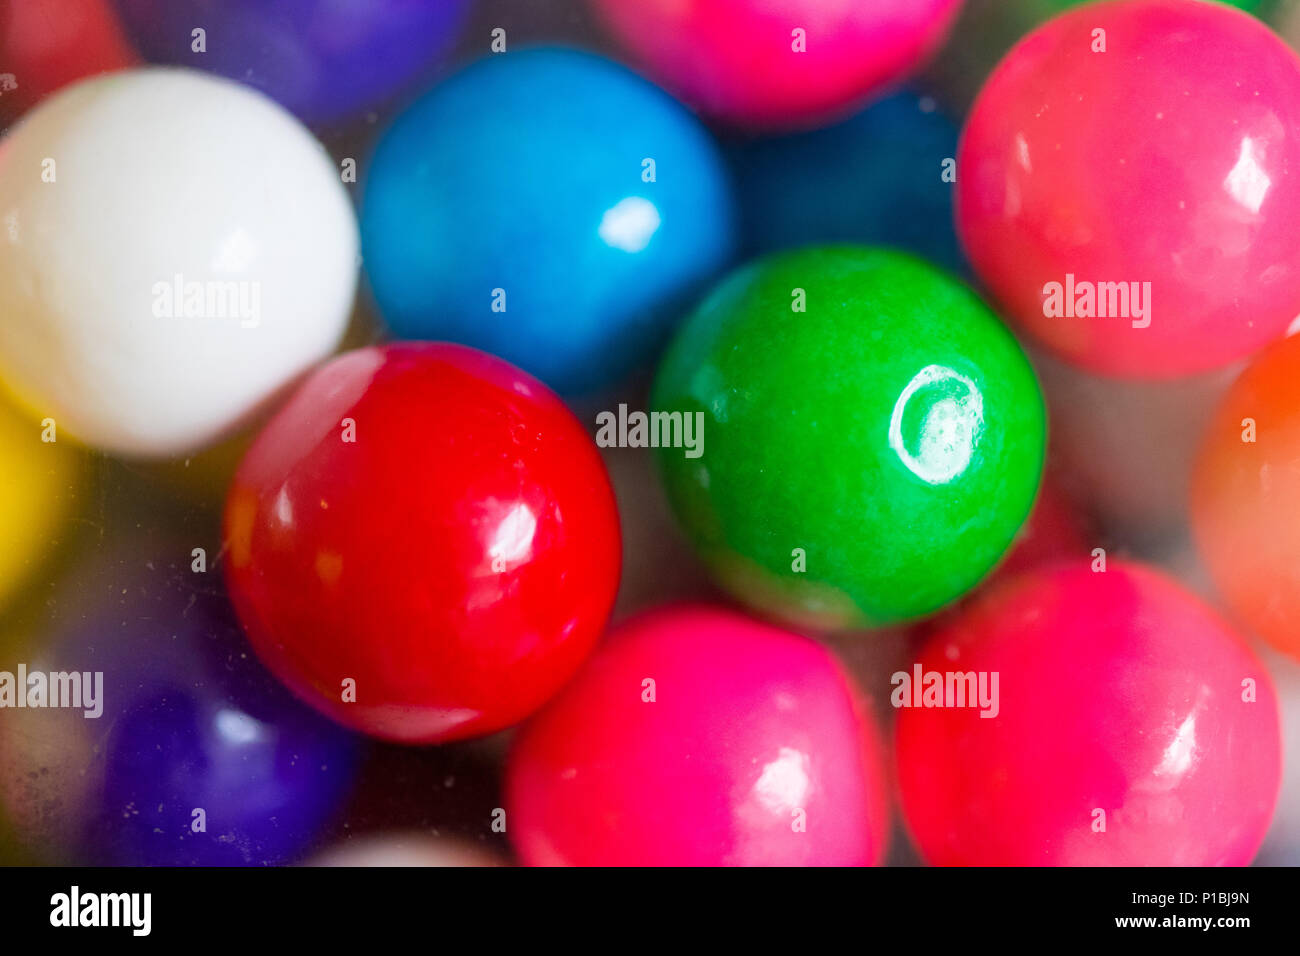 A lot of colorful candy close up - Stock Image